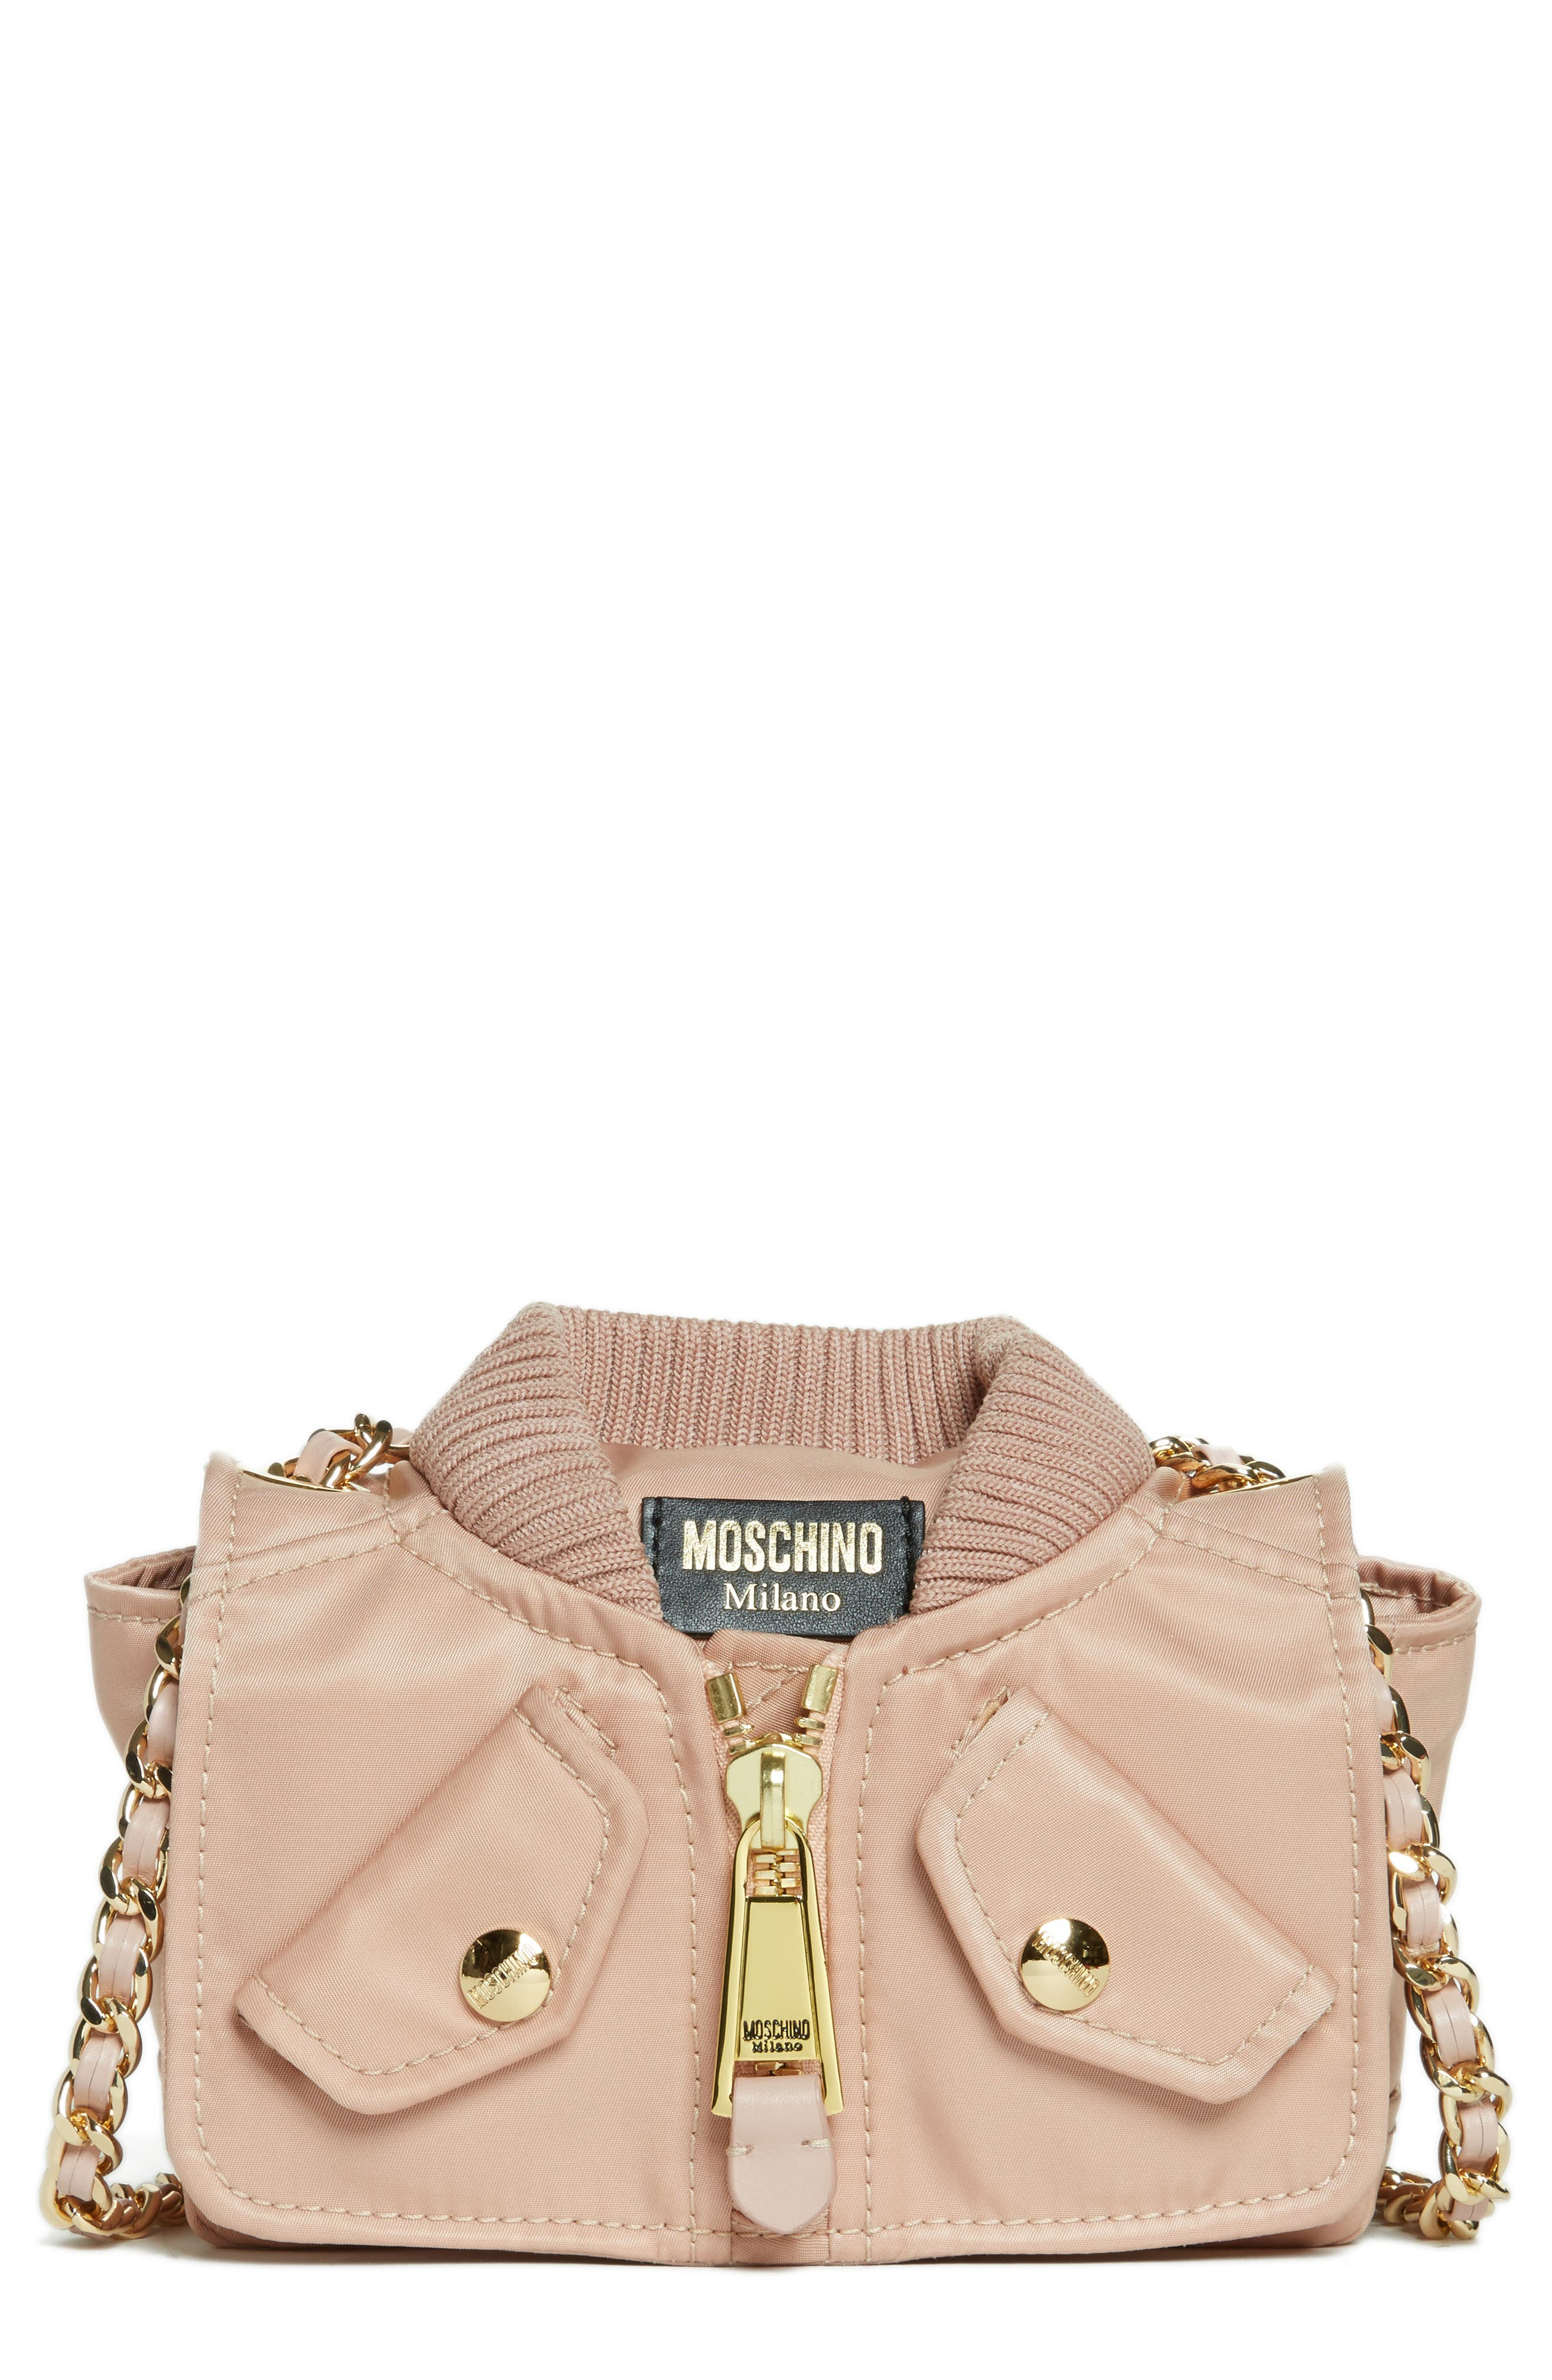 Alternate Image 1 Selected - Moschino Small Biker Jacket Nylon Shoulder Bag